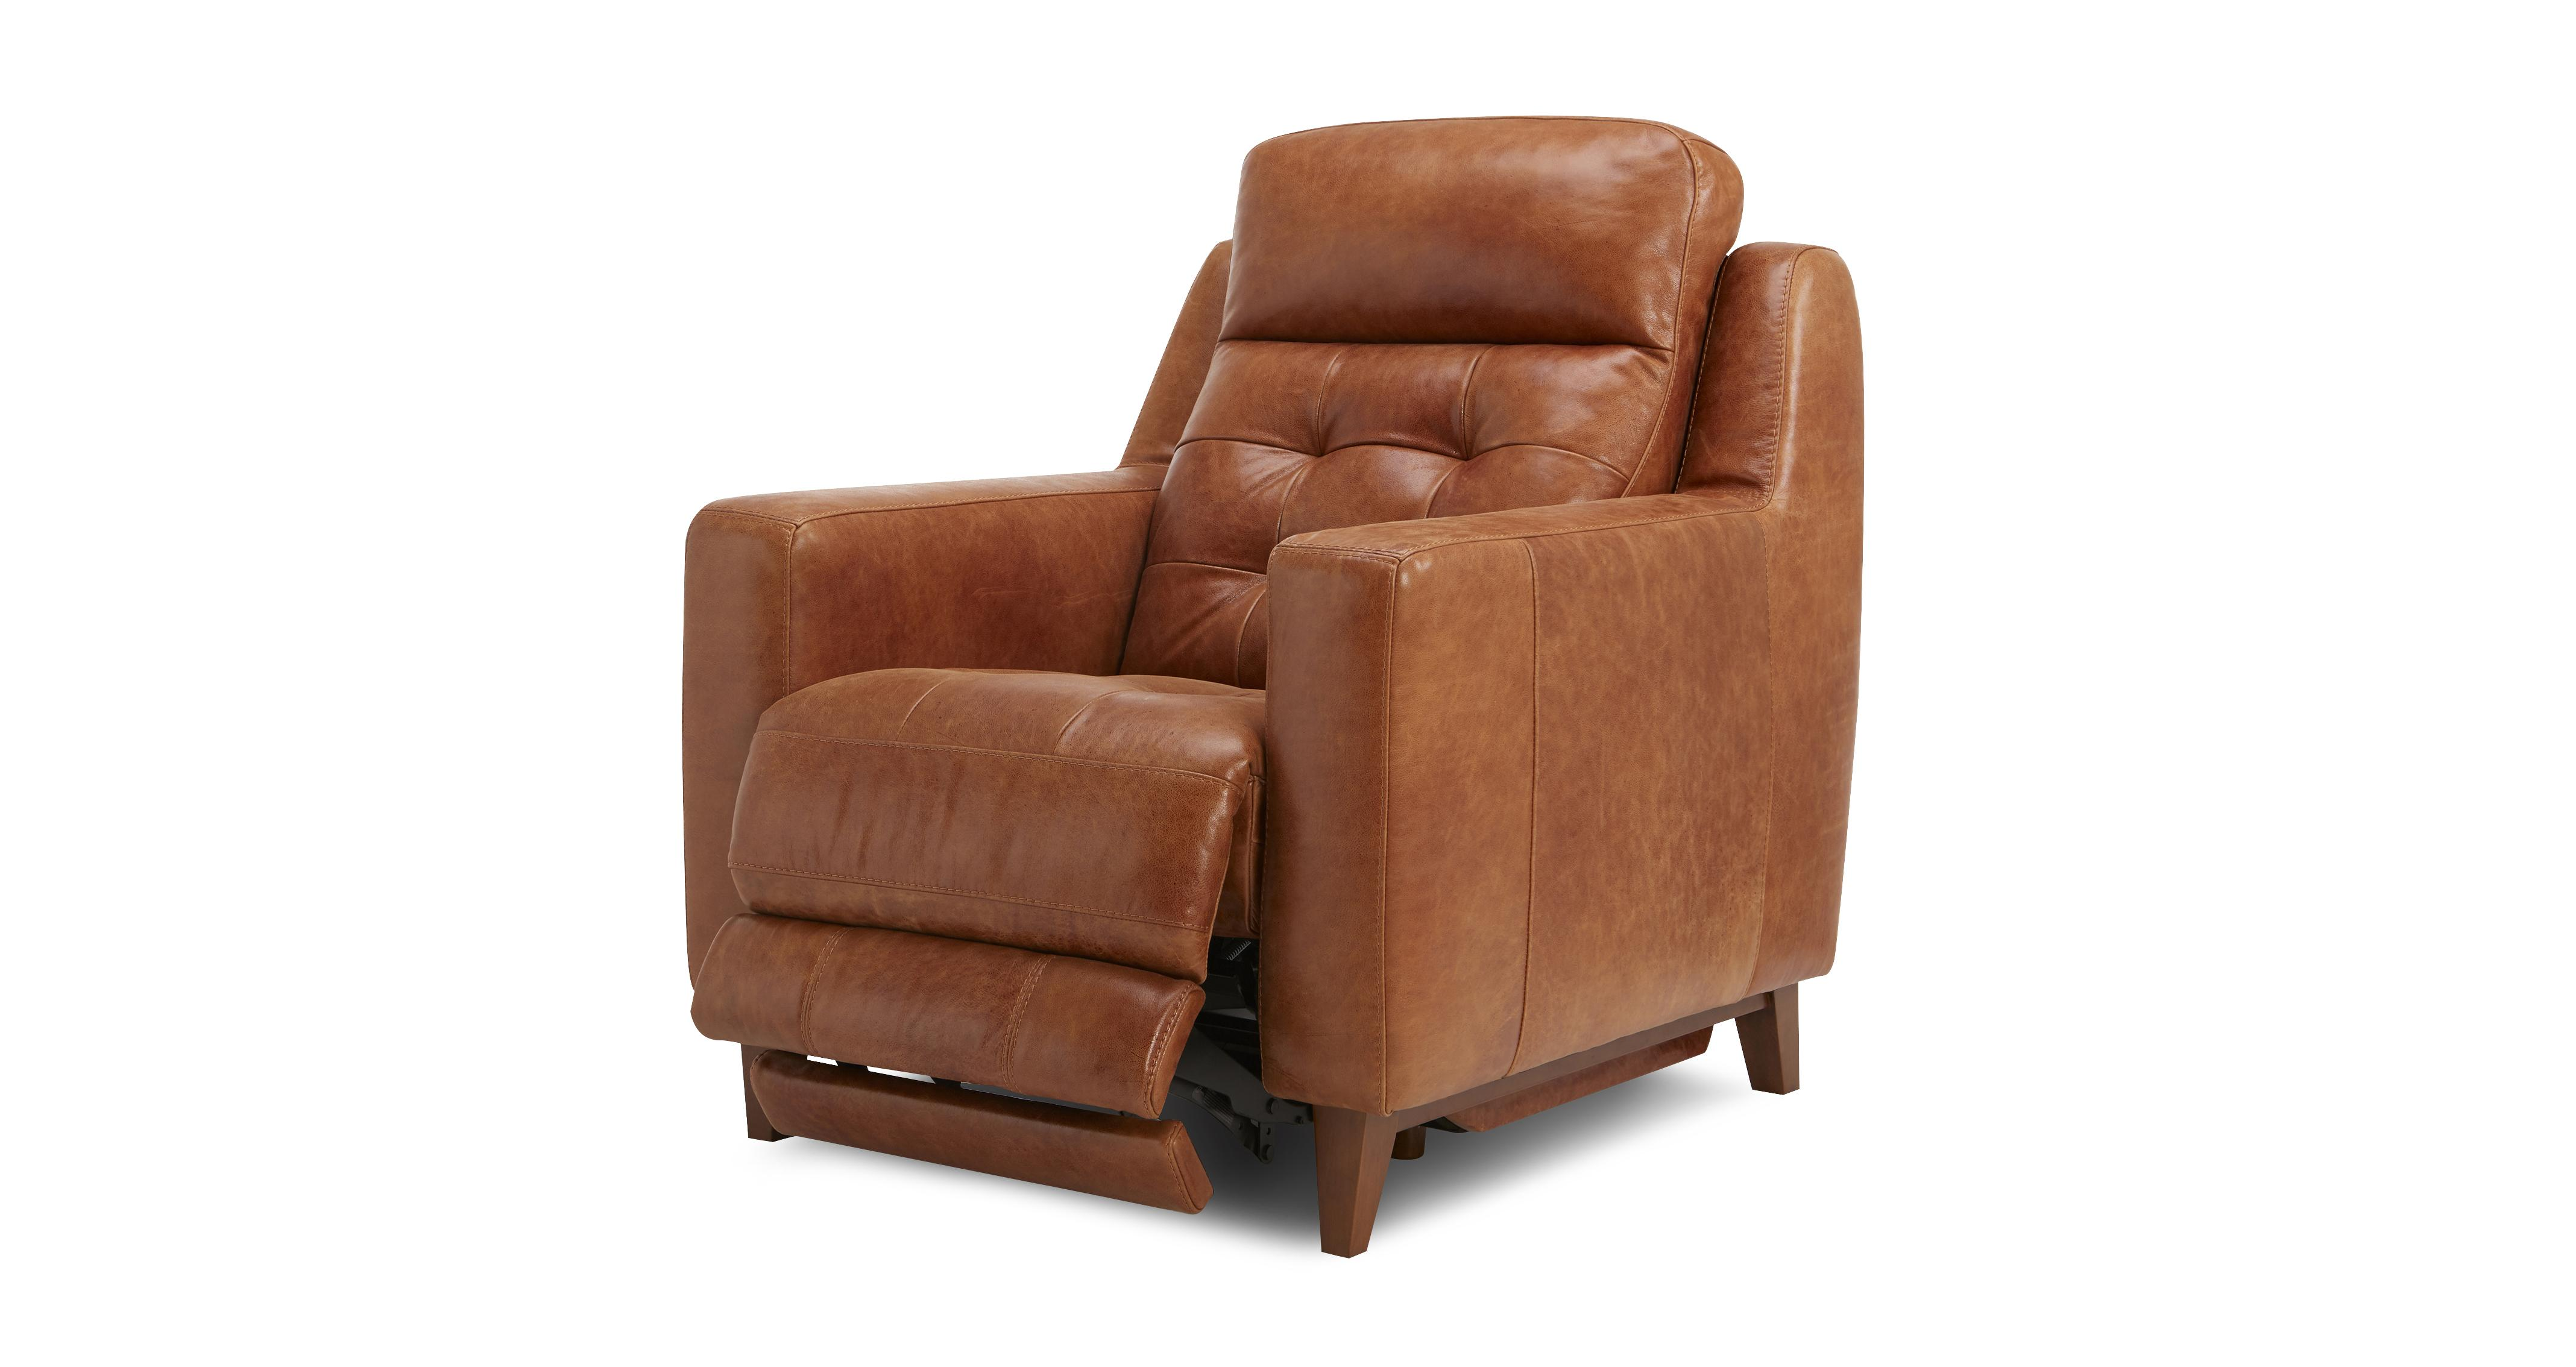 Rocco Electric Recliner Chair